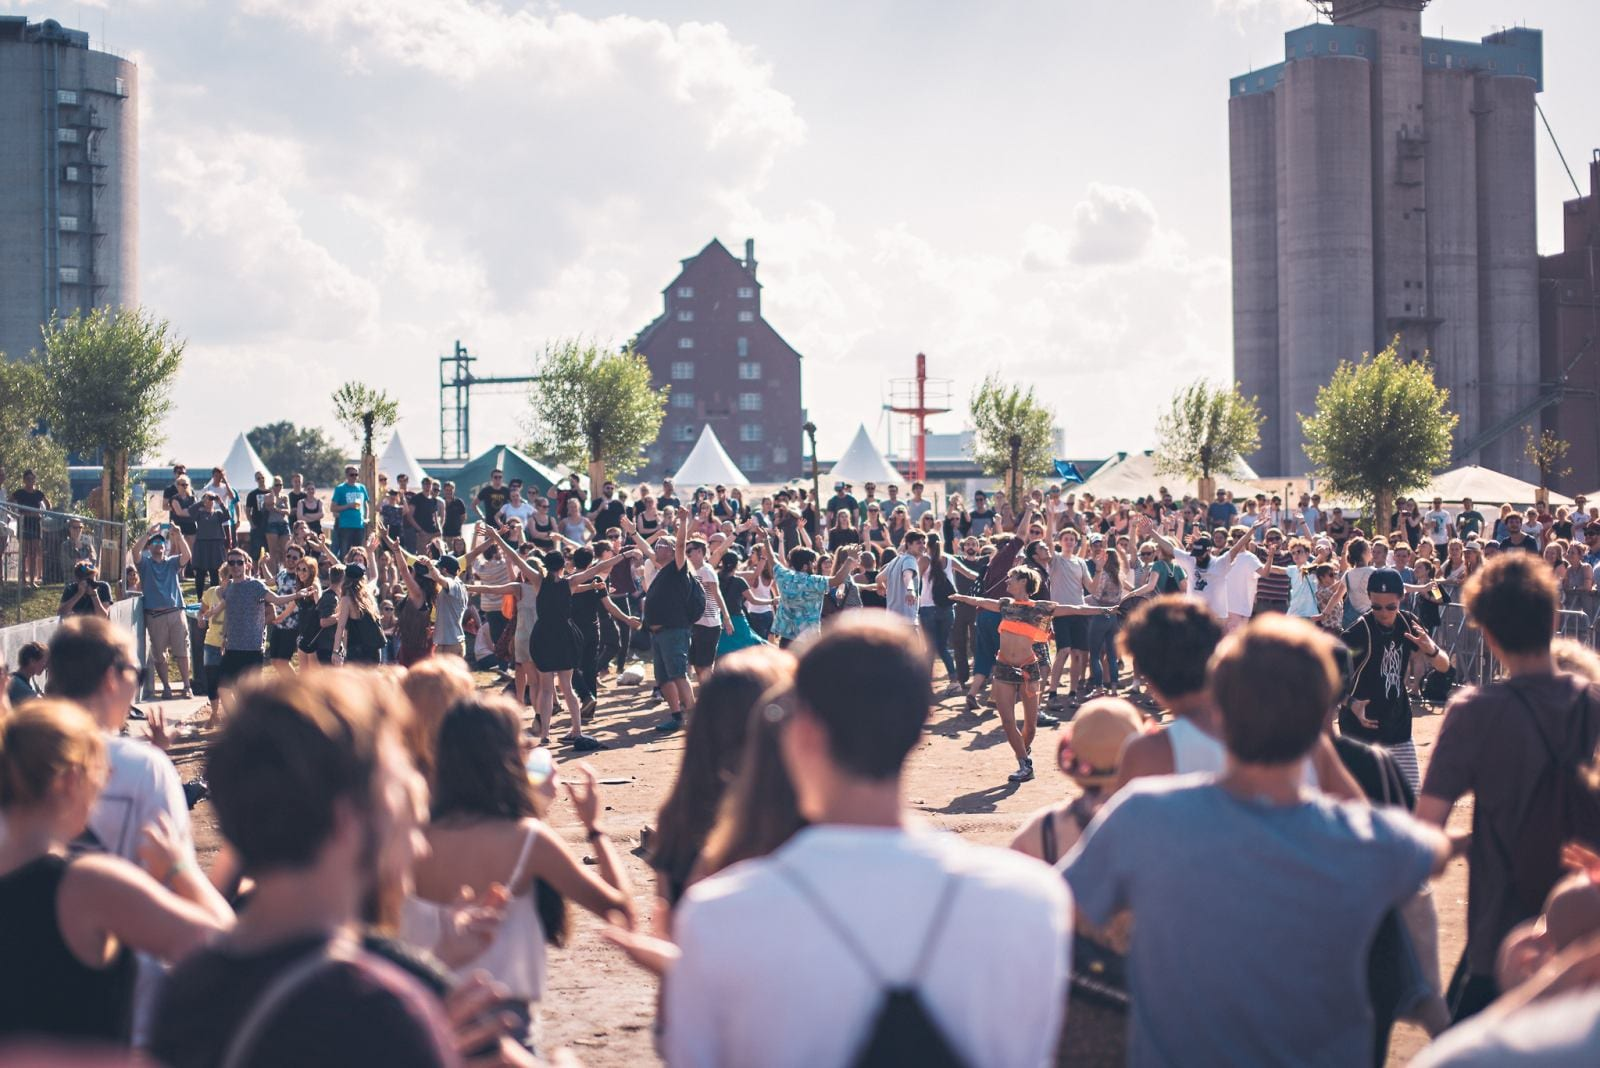 039 ms dockville 2015 dan deacon - MS Dockville 2015